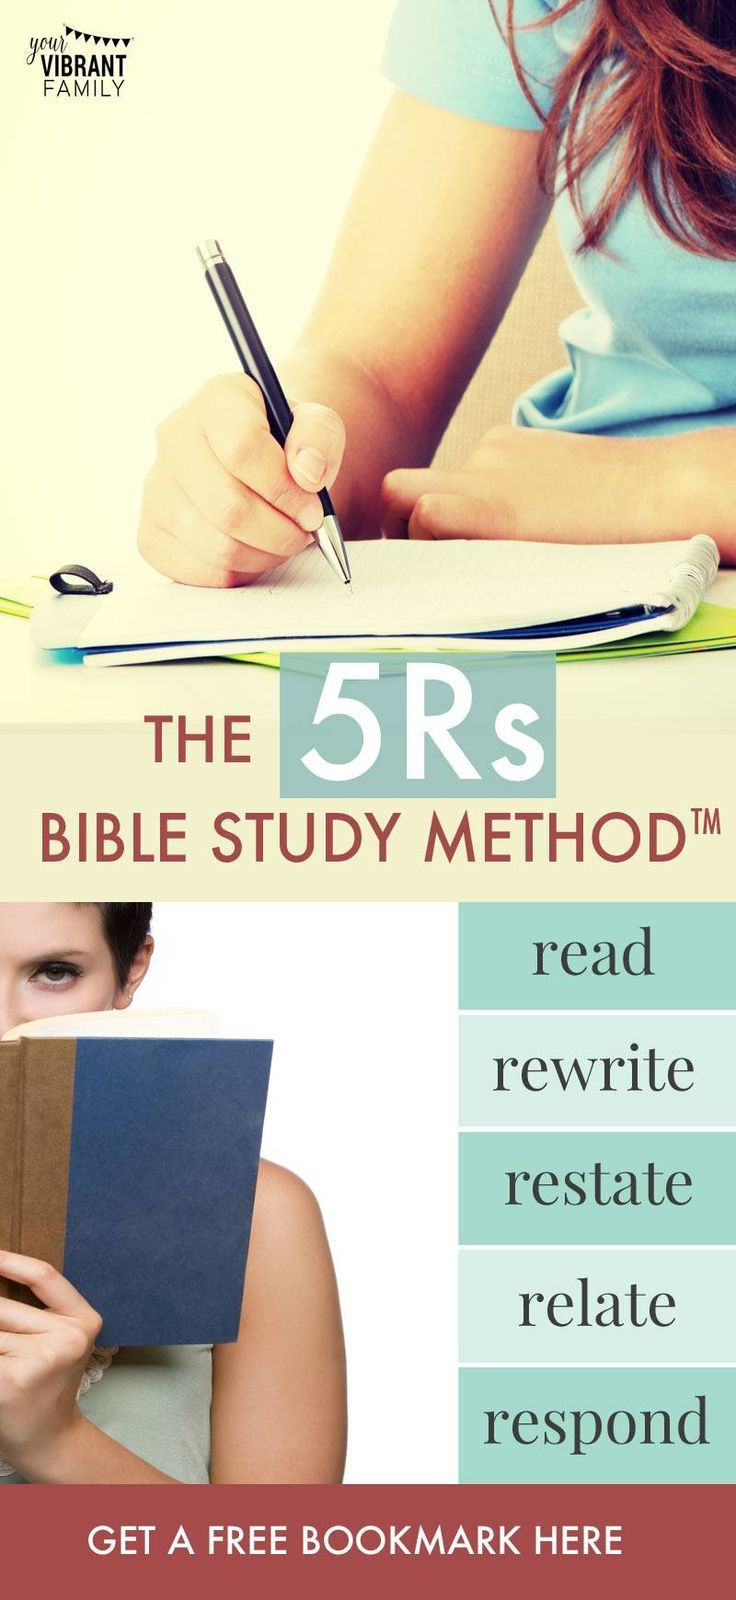 Want free bible study lessons? The 5Rs Bible Method teaches anyone how to study the bible effectively. This simple Bible study method is perfect for Bible study lessons for women! Grow spiritually and learn the best way to study the Bible! Plus get a free Bible study bookmark!